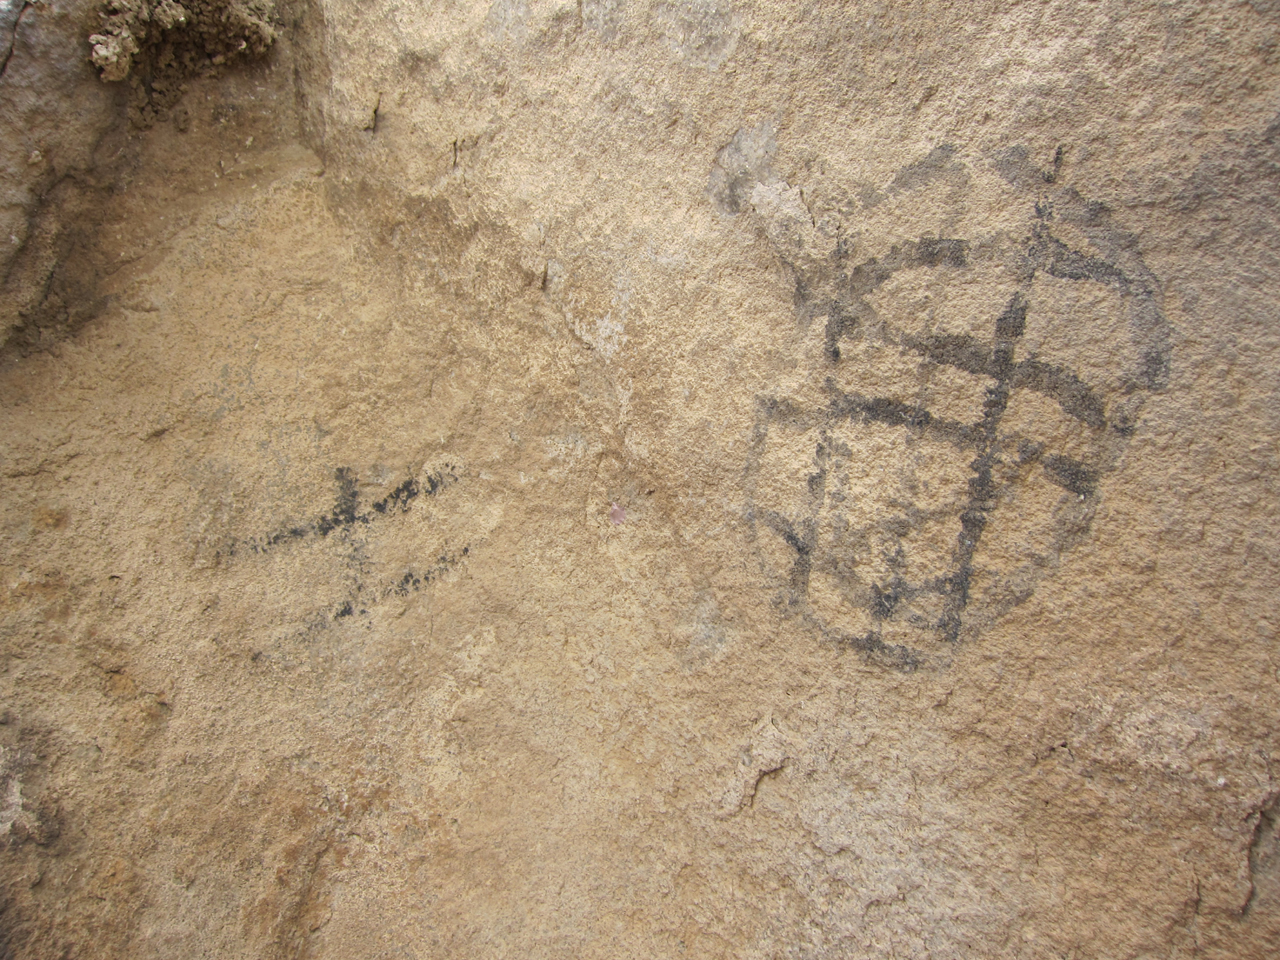 These were a bit more faded than the pictographs in the first cave which makes me think they haven't been touched up.